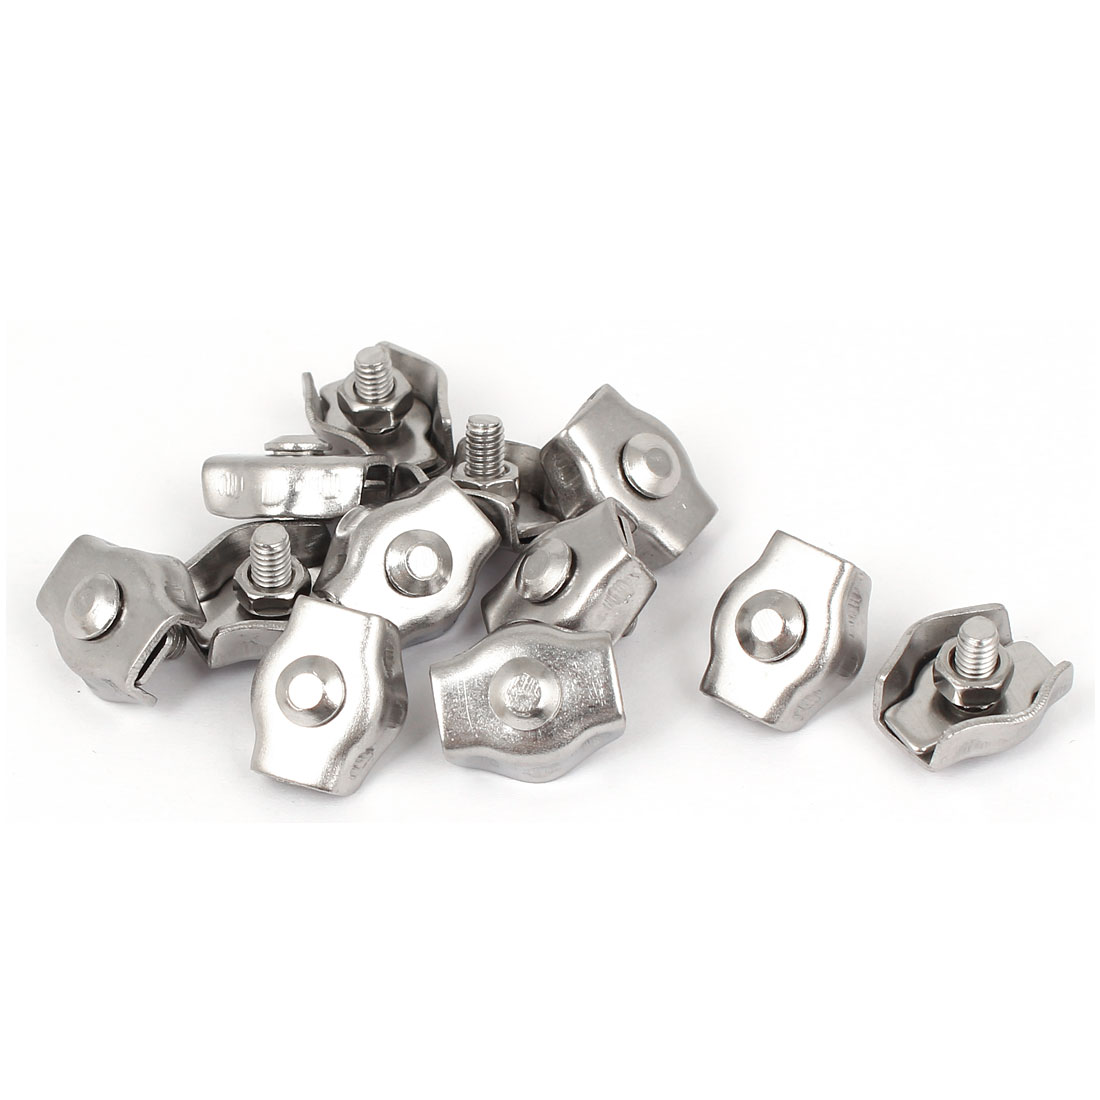 M3 Stainless Steel Simplex Wire Rope Clip Cable Clamp Single Bolt 12 Pcs